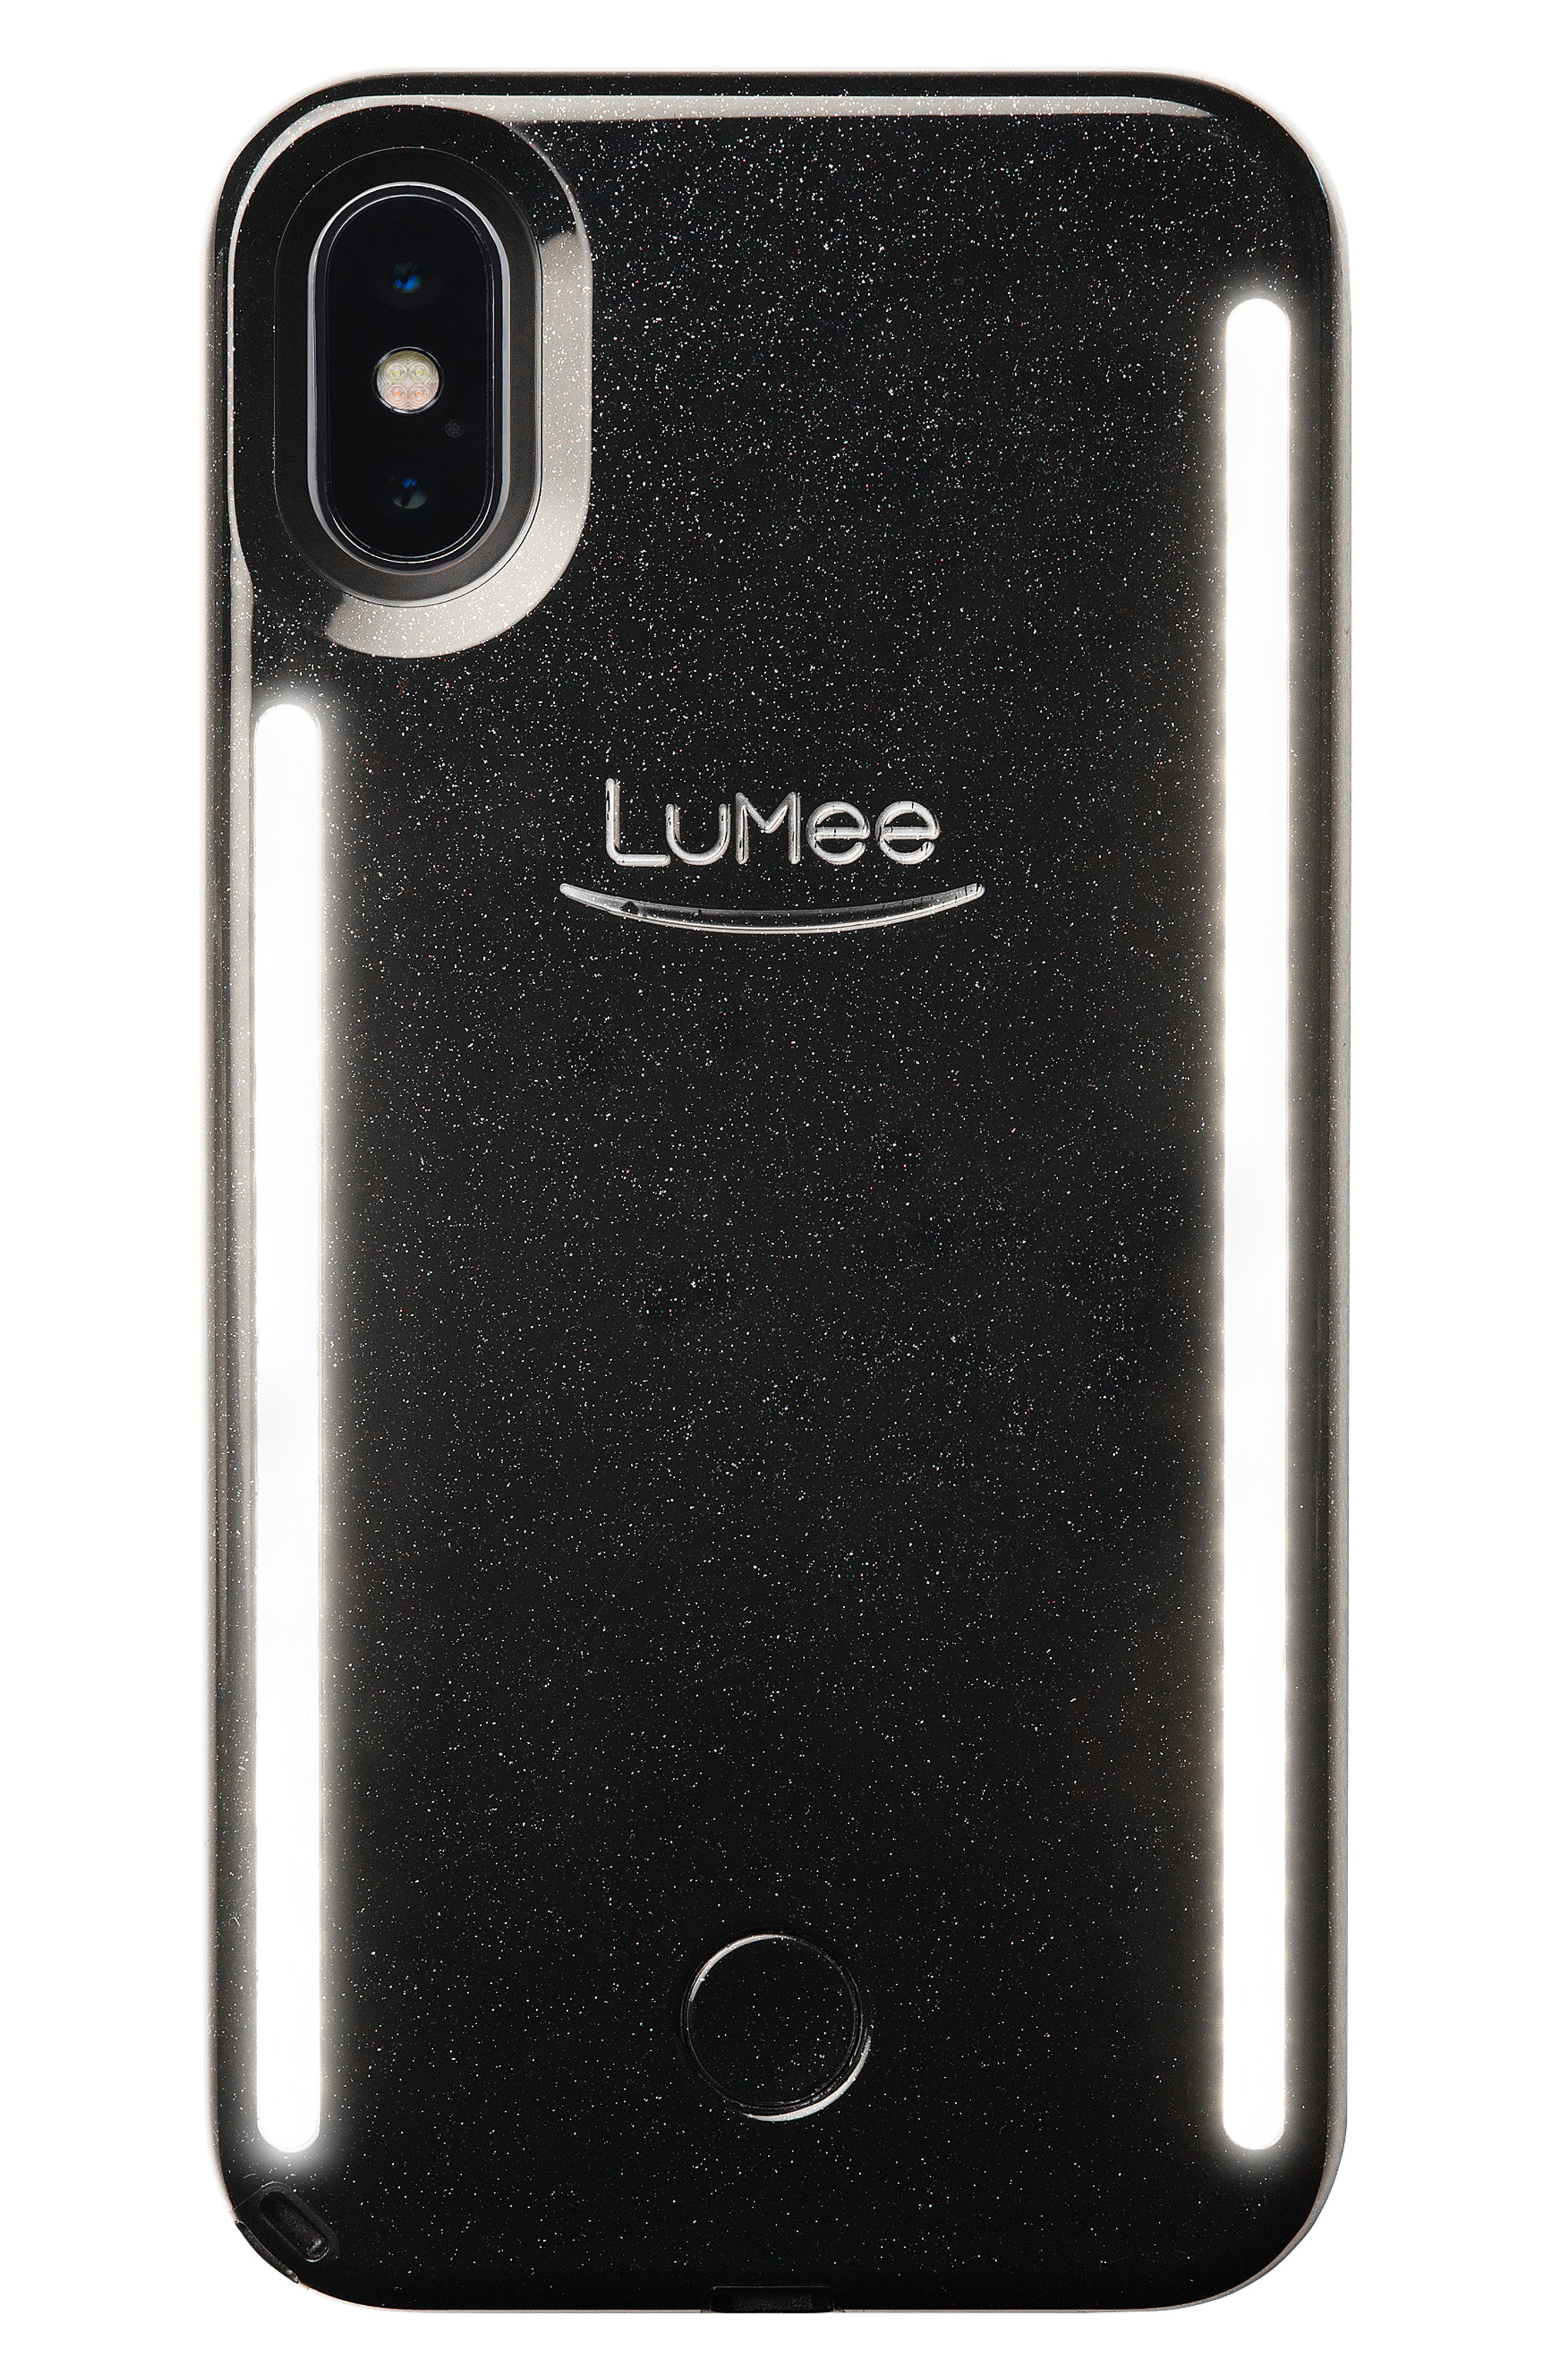 LUMEE Duo LED Lighted iPhone X/Xs, XR & X Max Case, Main, color, BLACK GLITTER